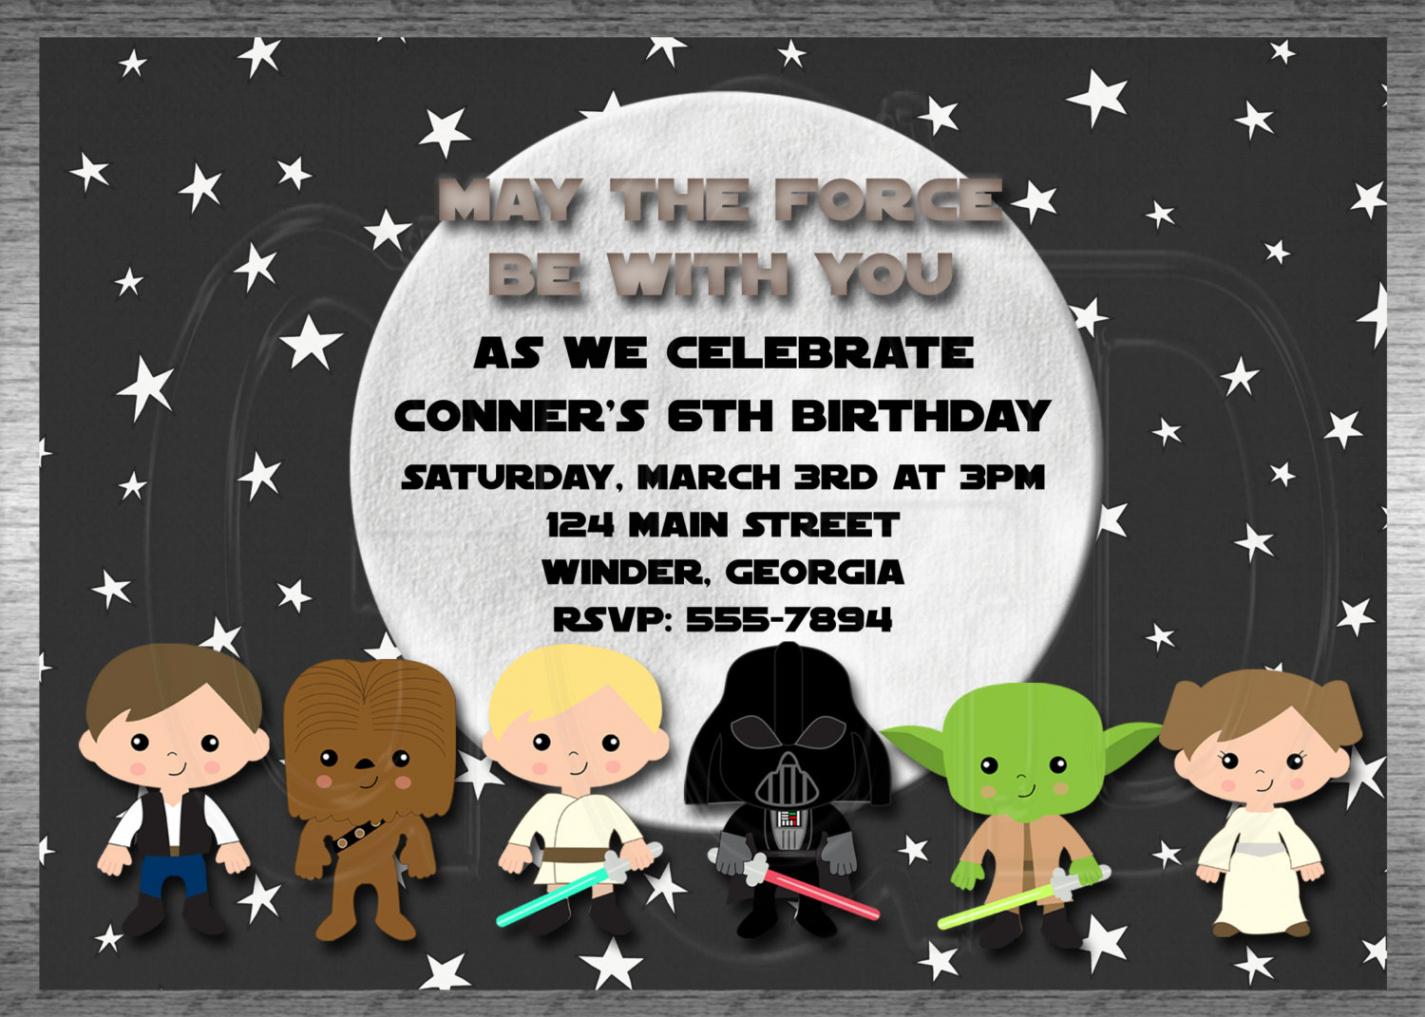 Elegantcustomize 1000 Free Printable Star Wars Baby Shower Invites - Free Printable Star Wars Baby Shower Invites